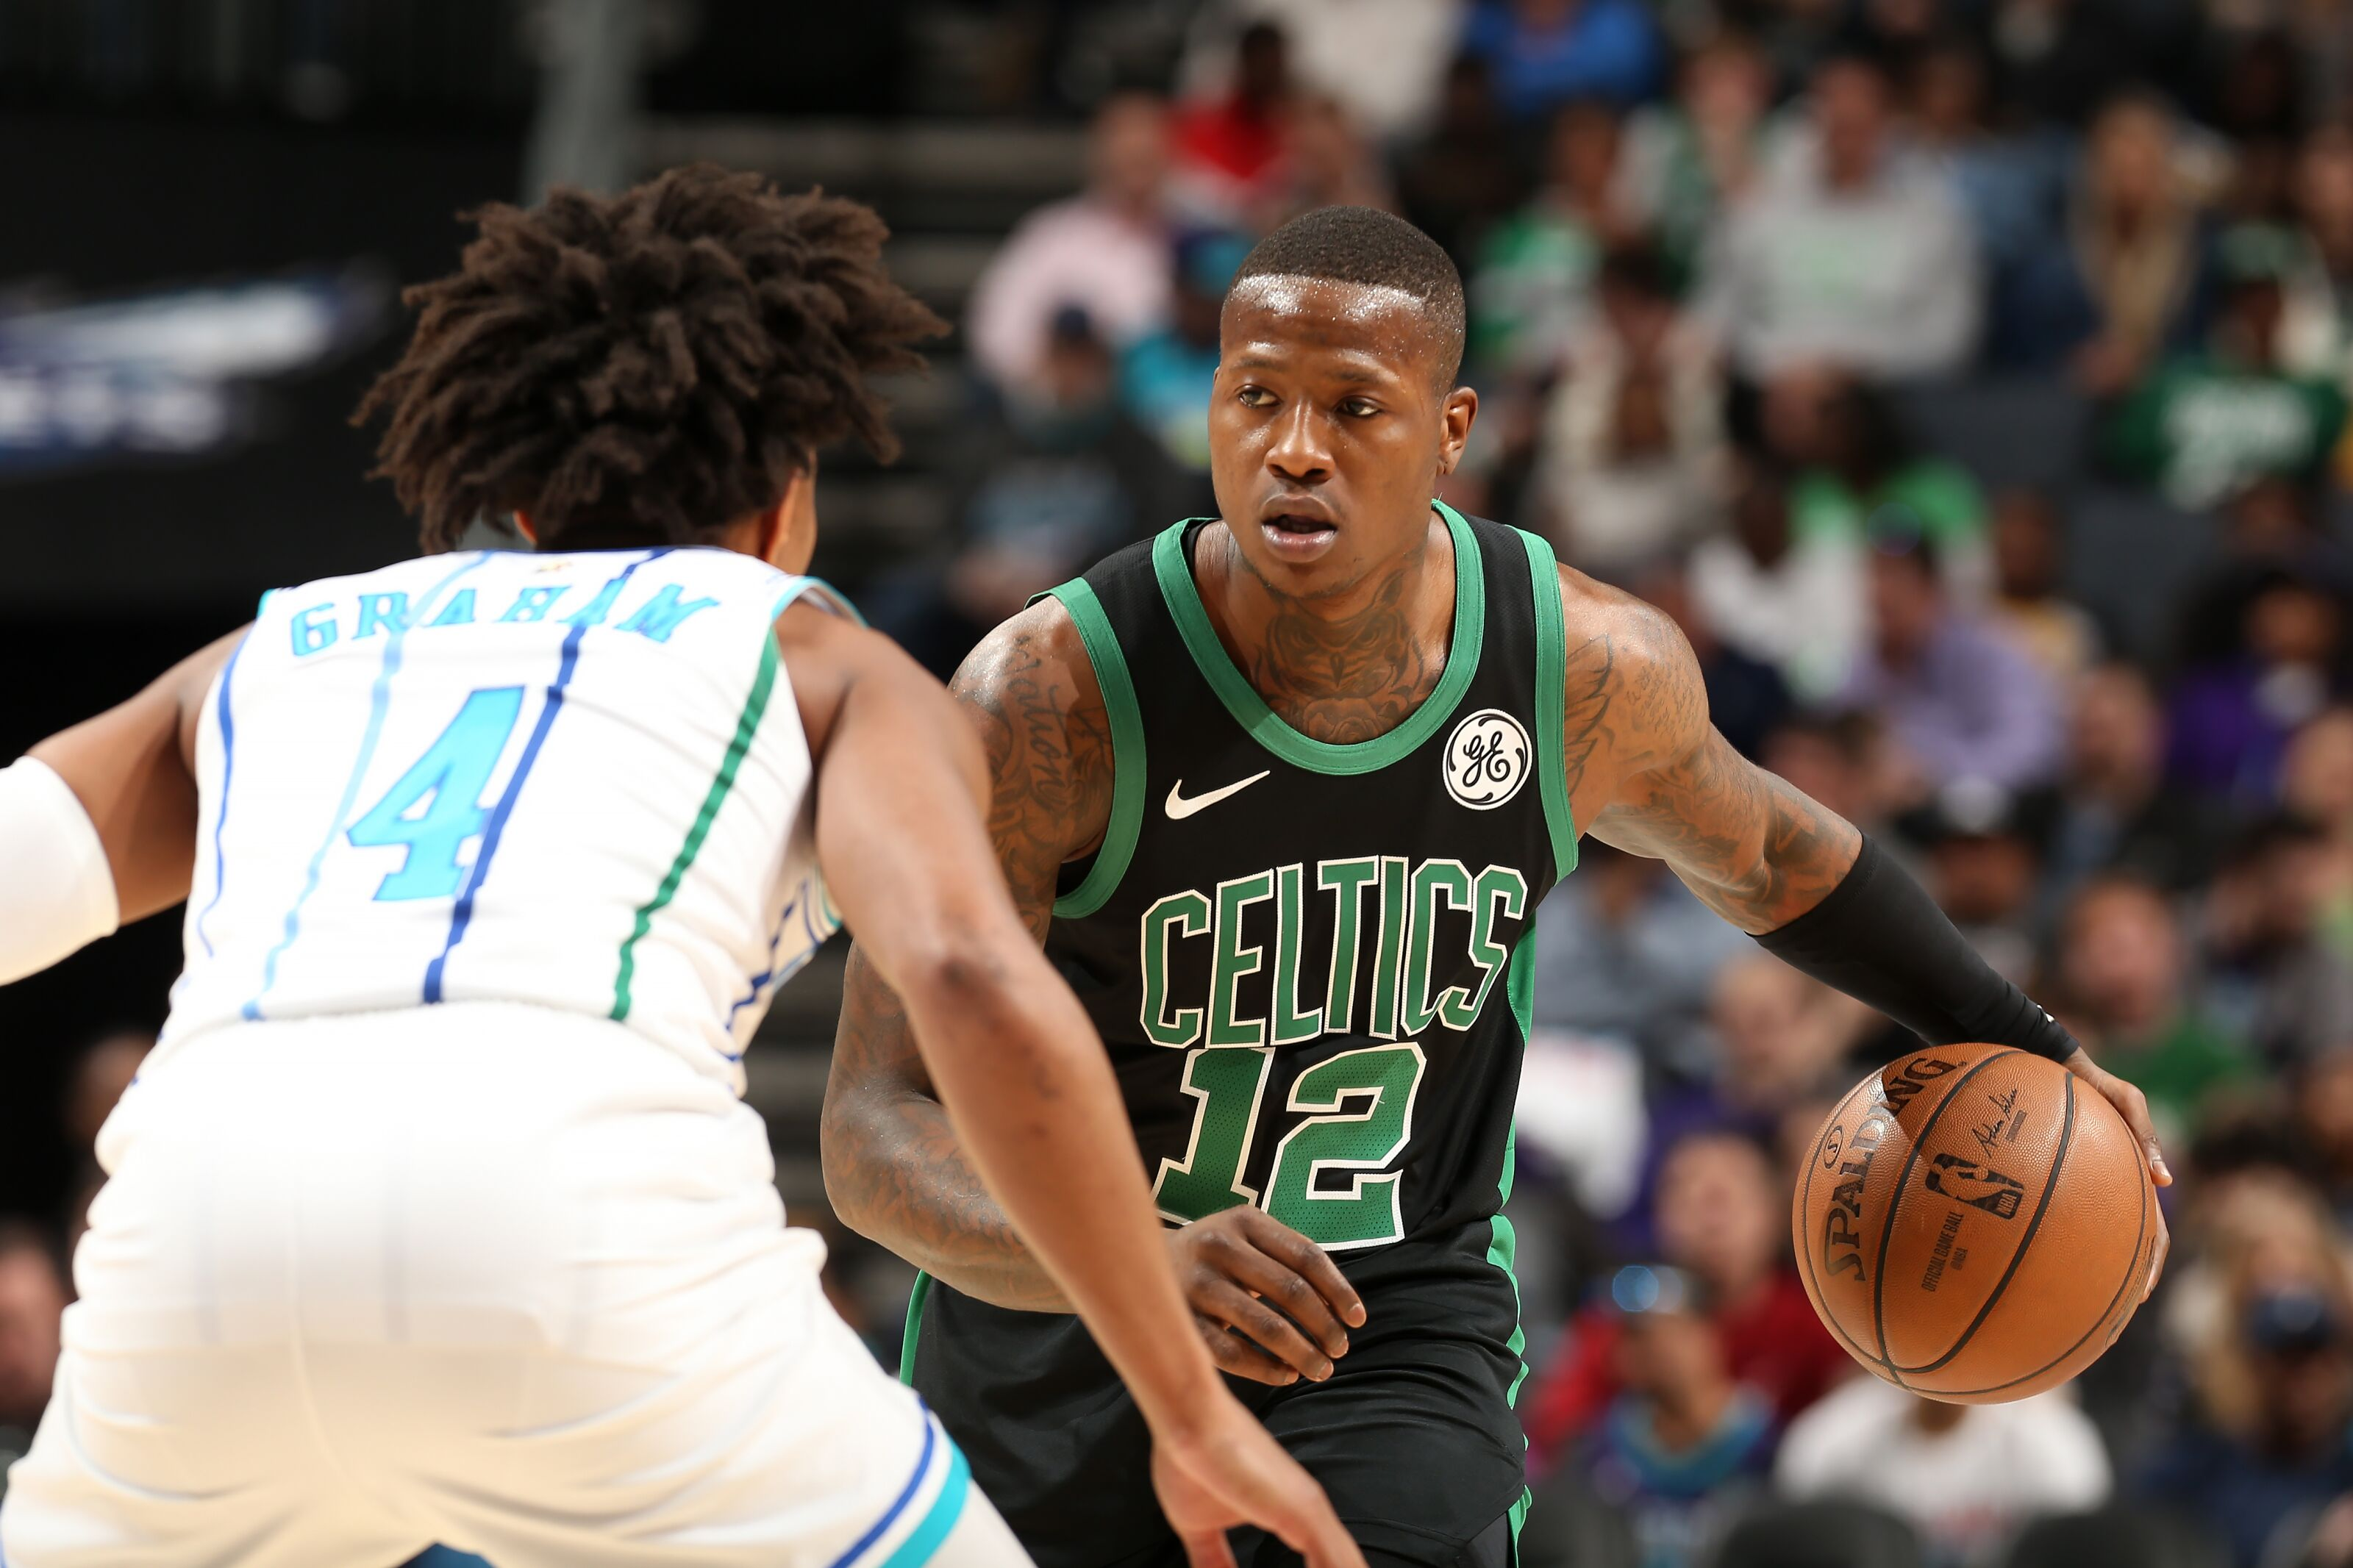 Pacers PSA: What ever you do, don't sign Terry Rozier